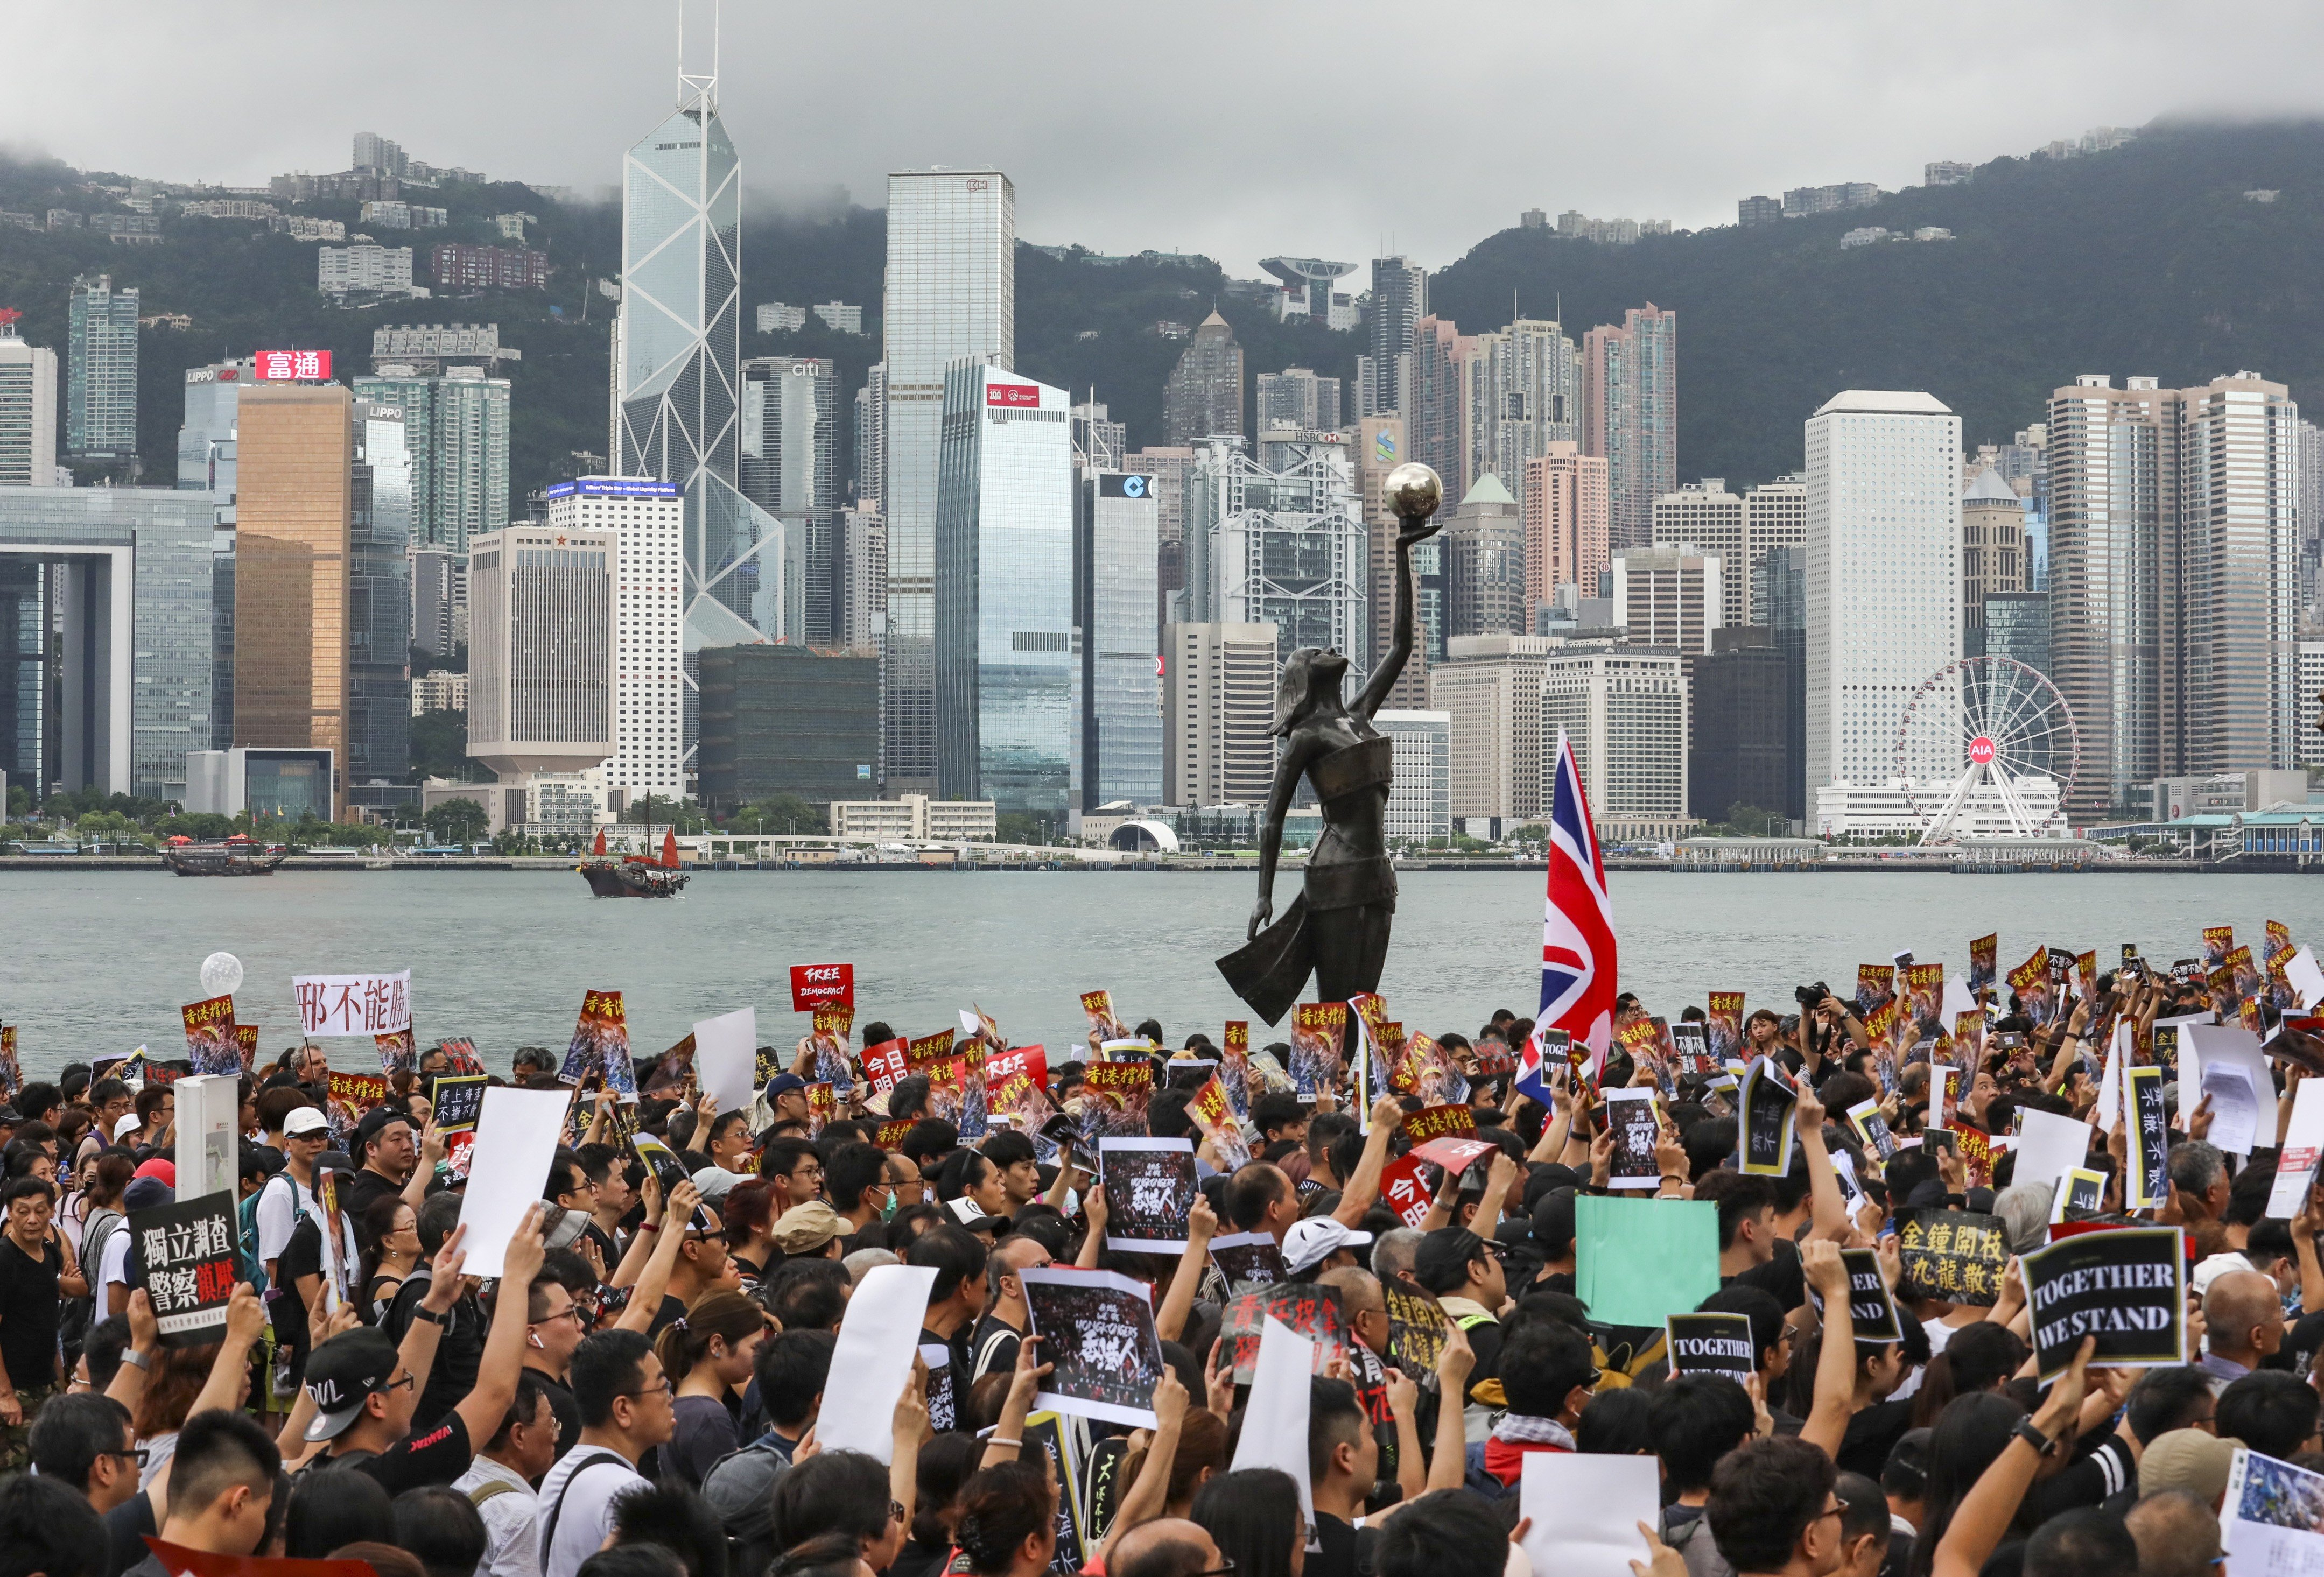 Hong Kong's political instability means 2020 could be the endgame